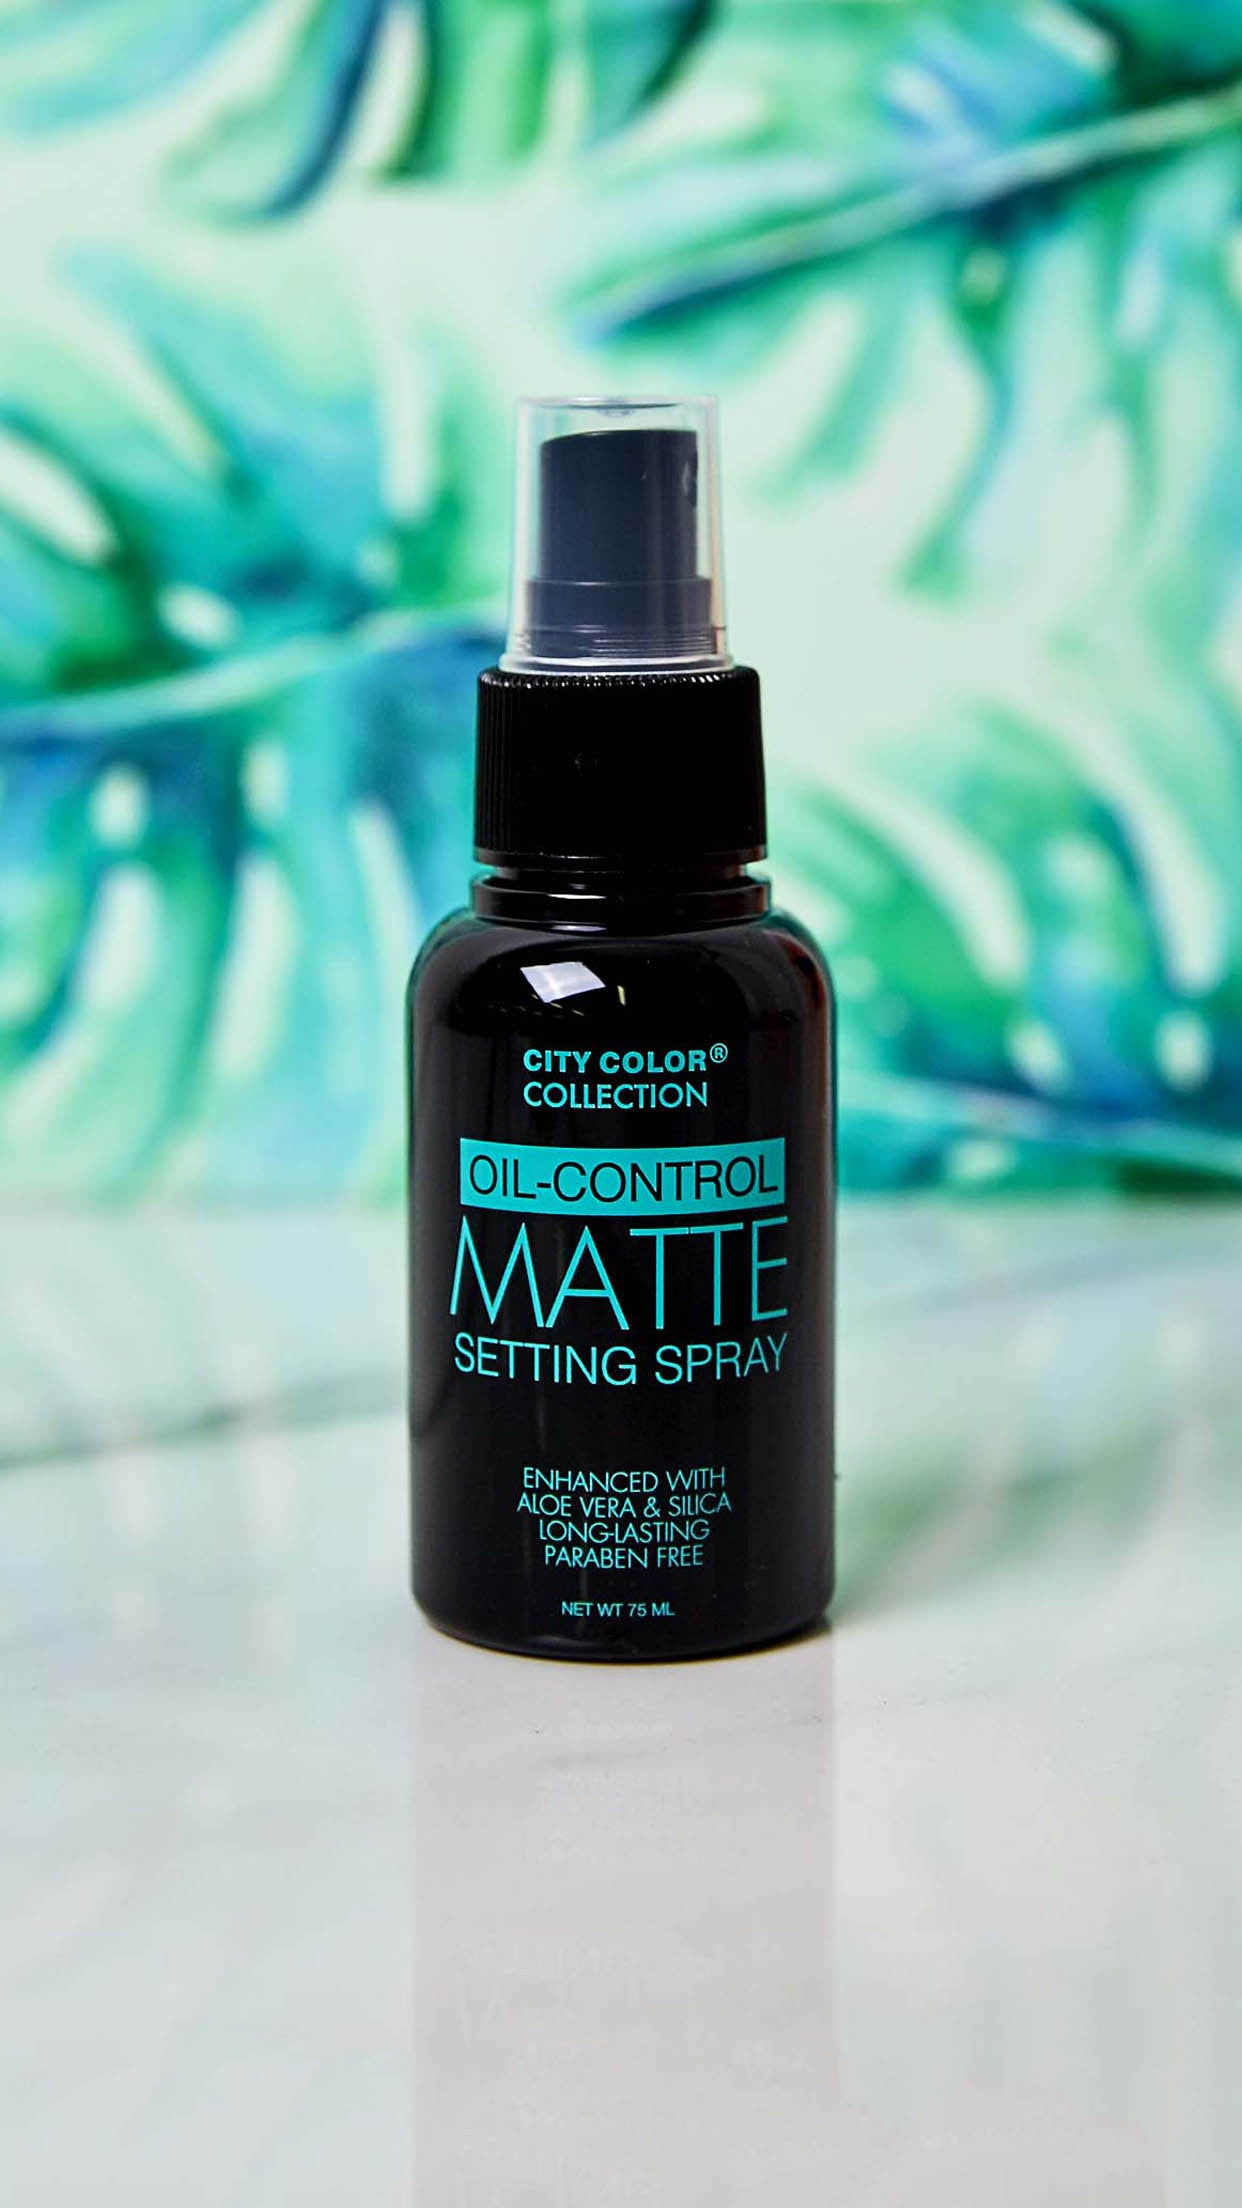 Oil-Control Matte Setting Spray